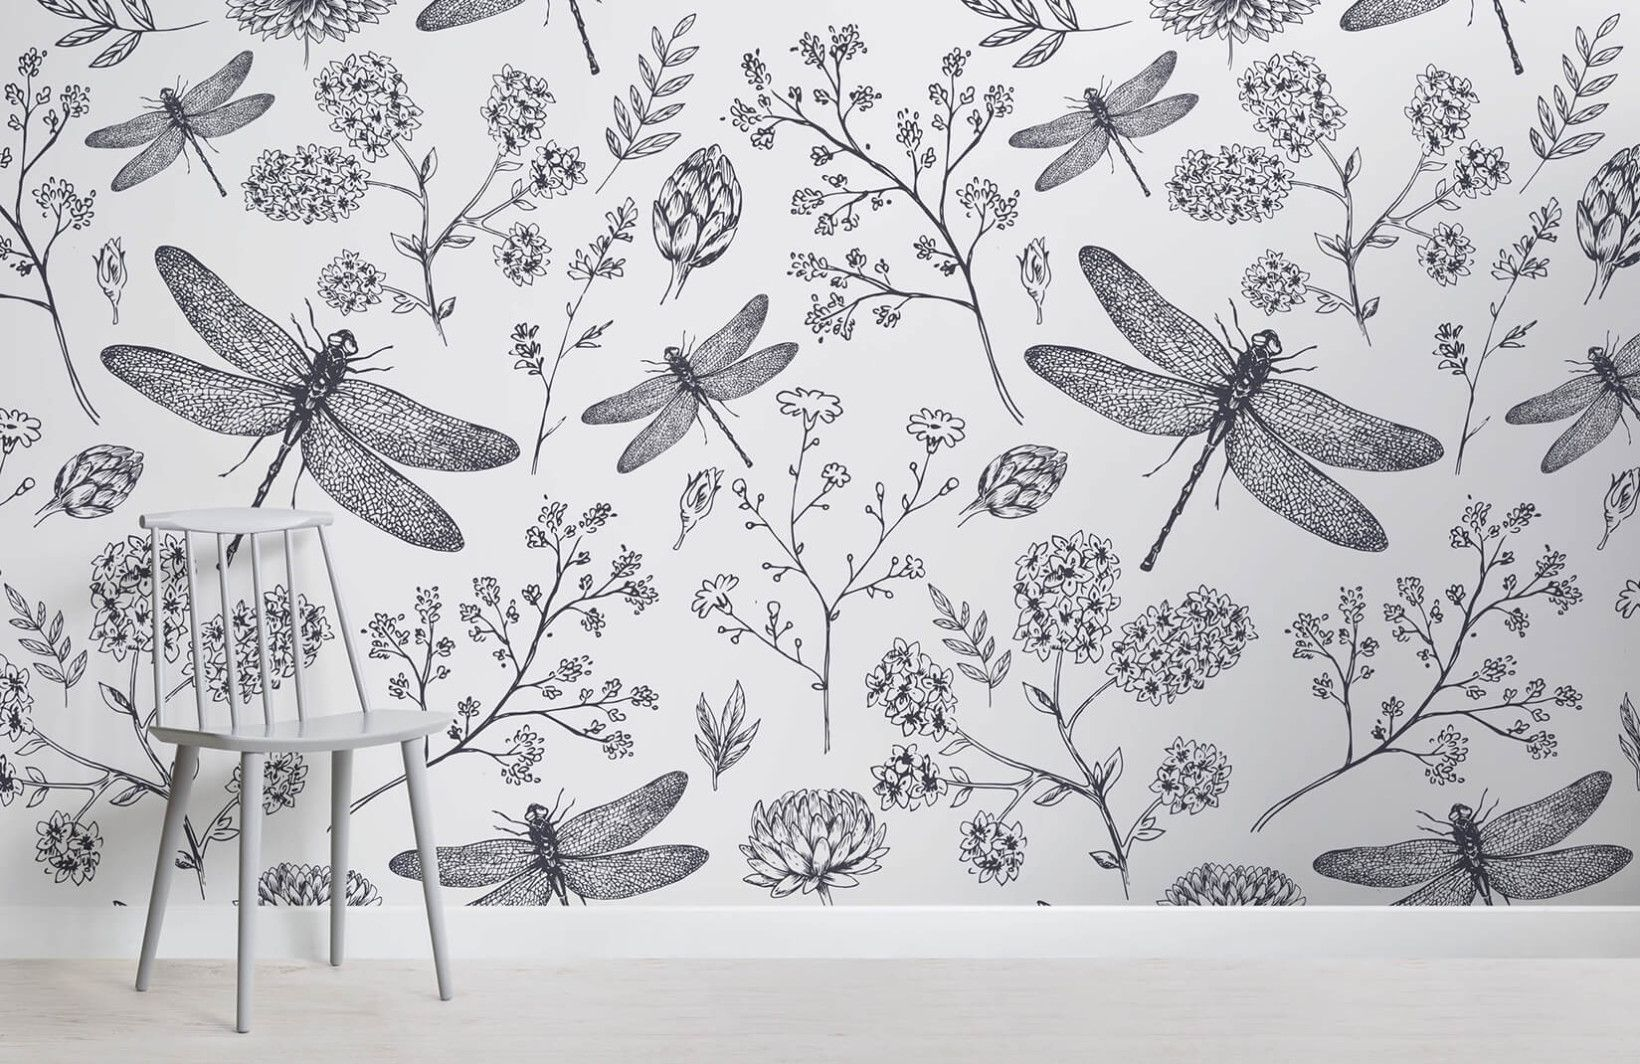 Dragonfly Wallpaper Stylish Illustration For Walls Muralswal